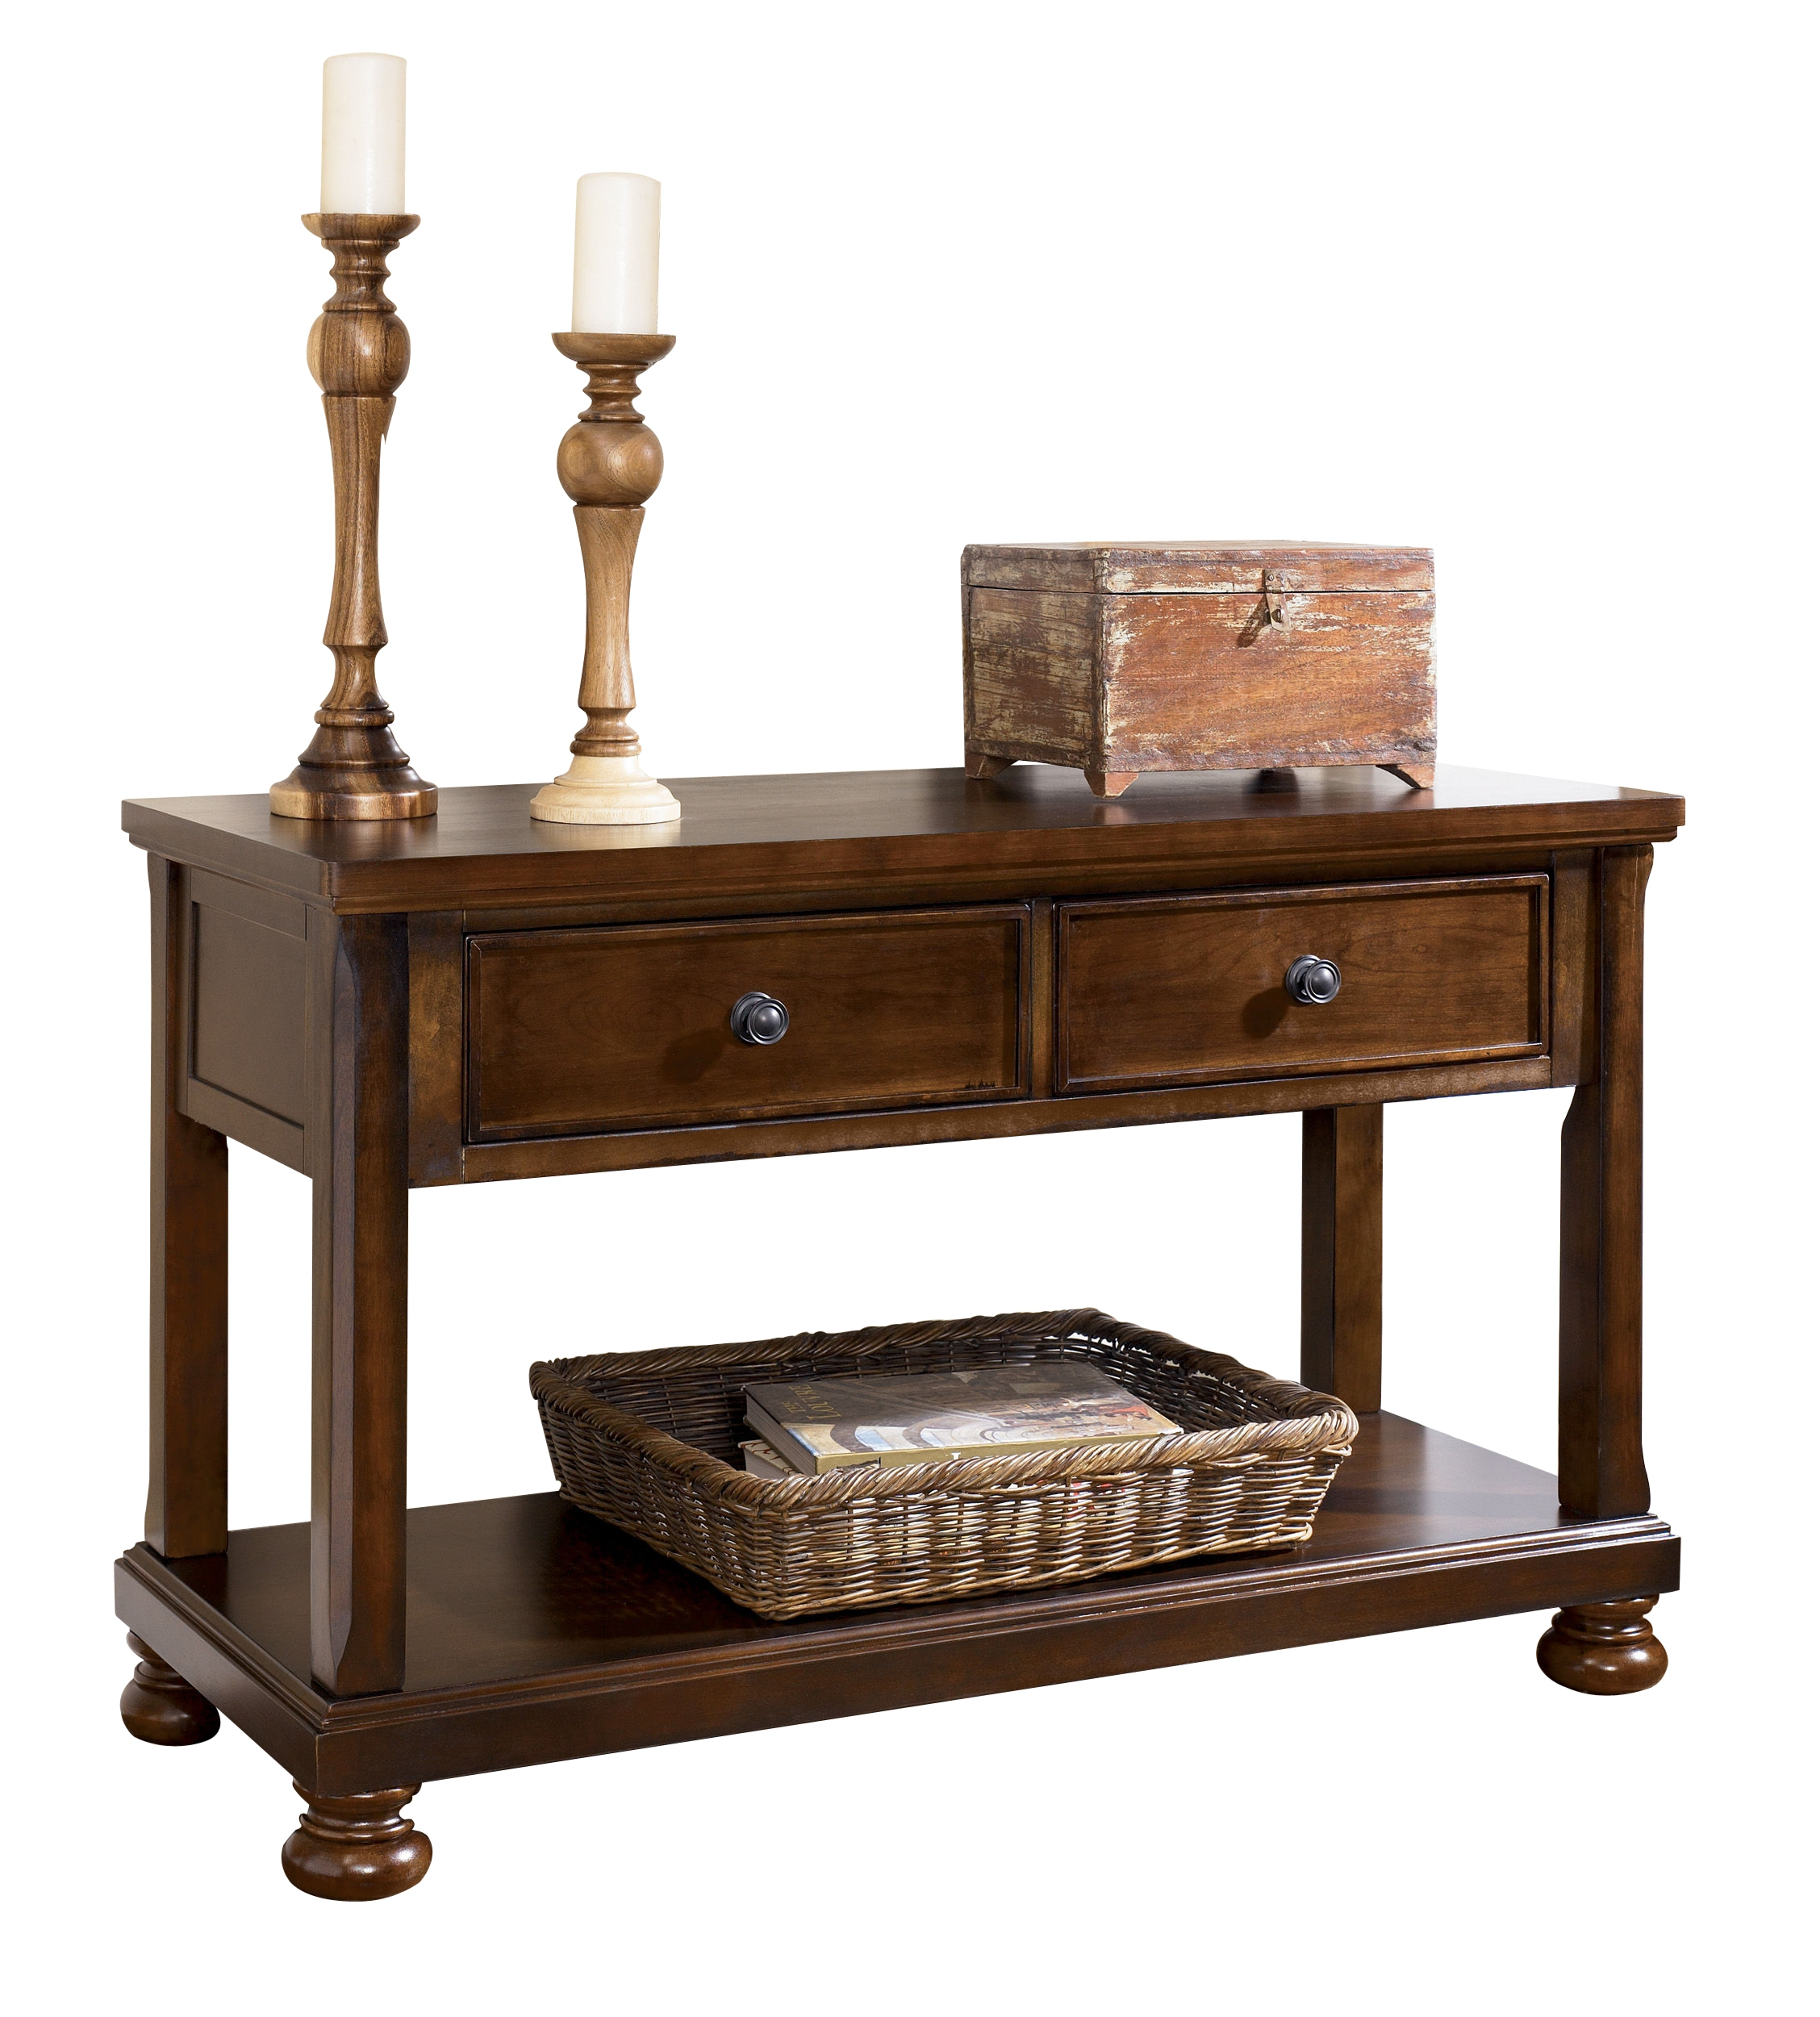 ... Wood Sofa Console Table W/Storage Click To Enlarge ...